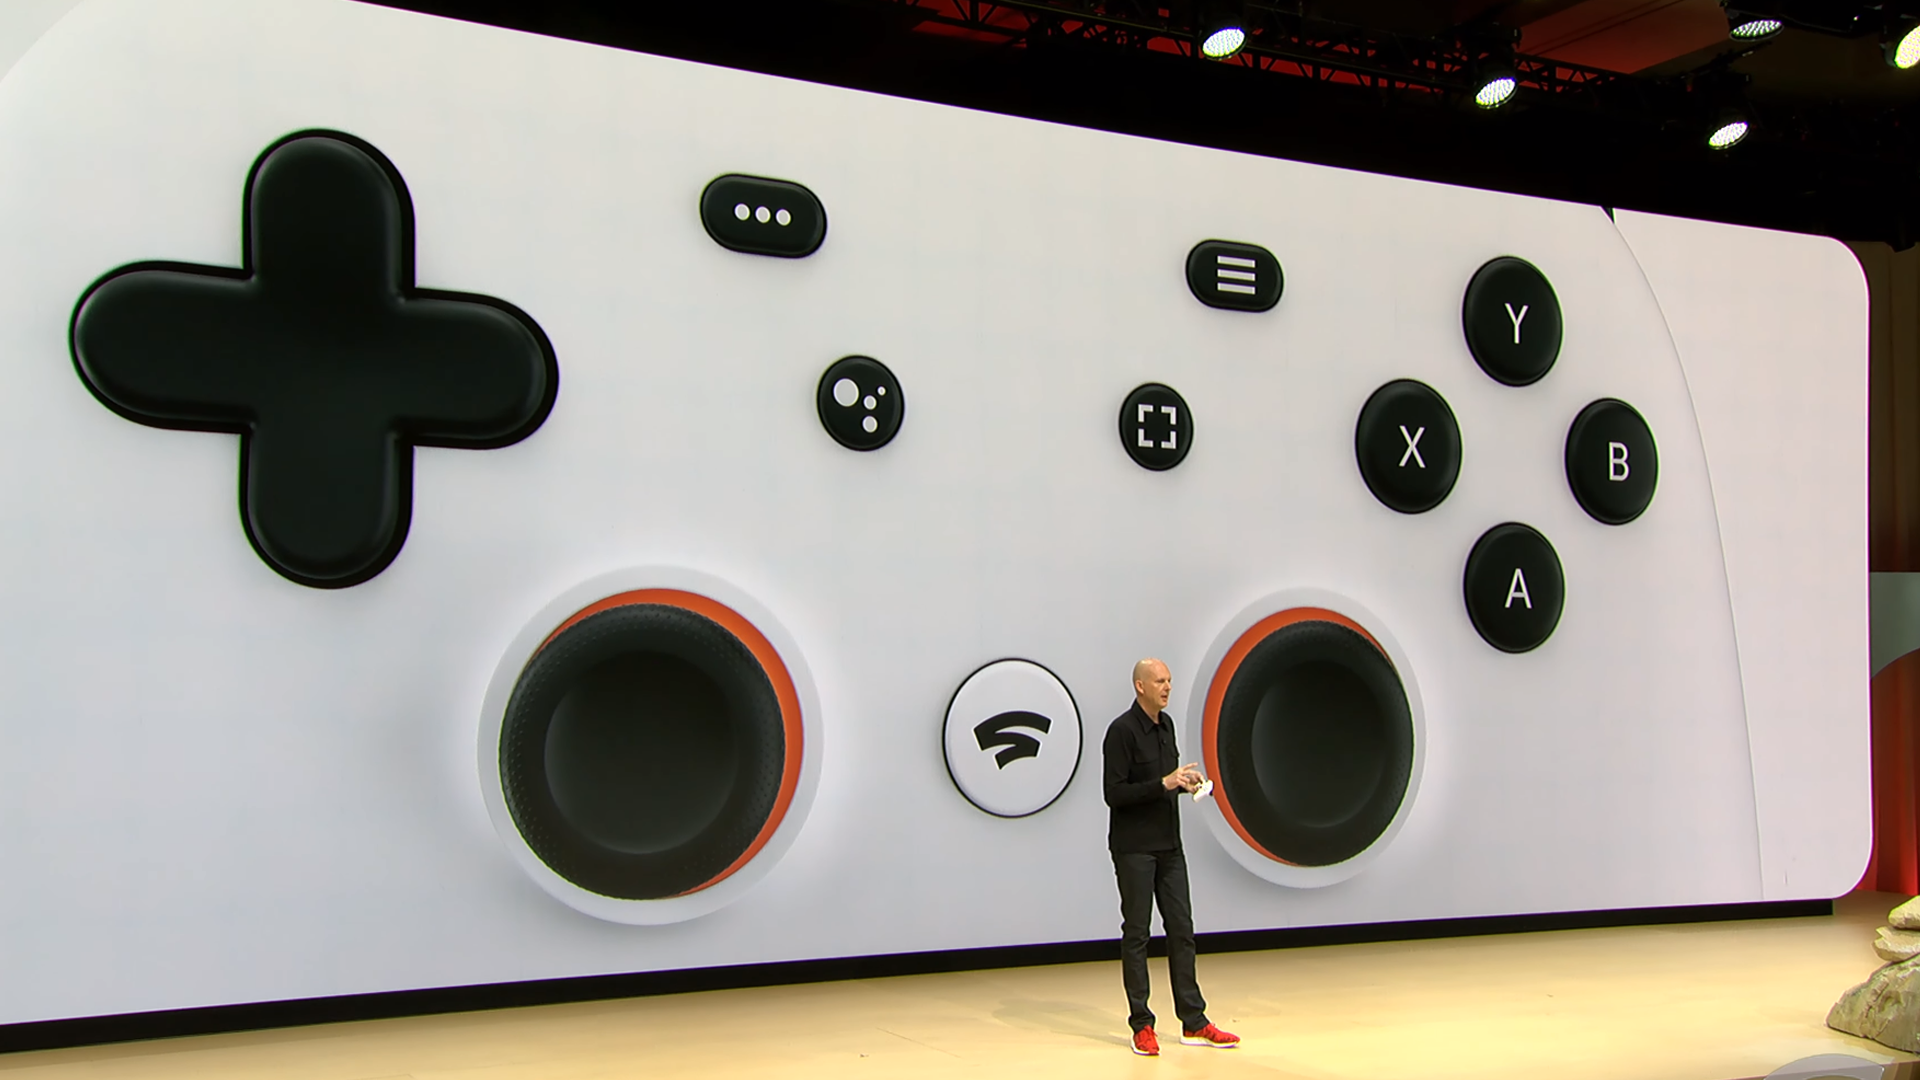 Google's Stadia streaming game platform has enormous potential, and a few roadblocks.